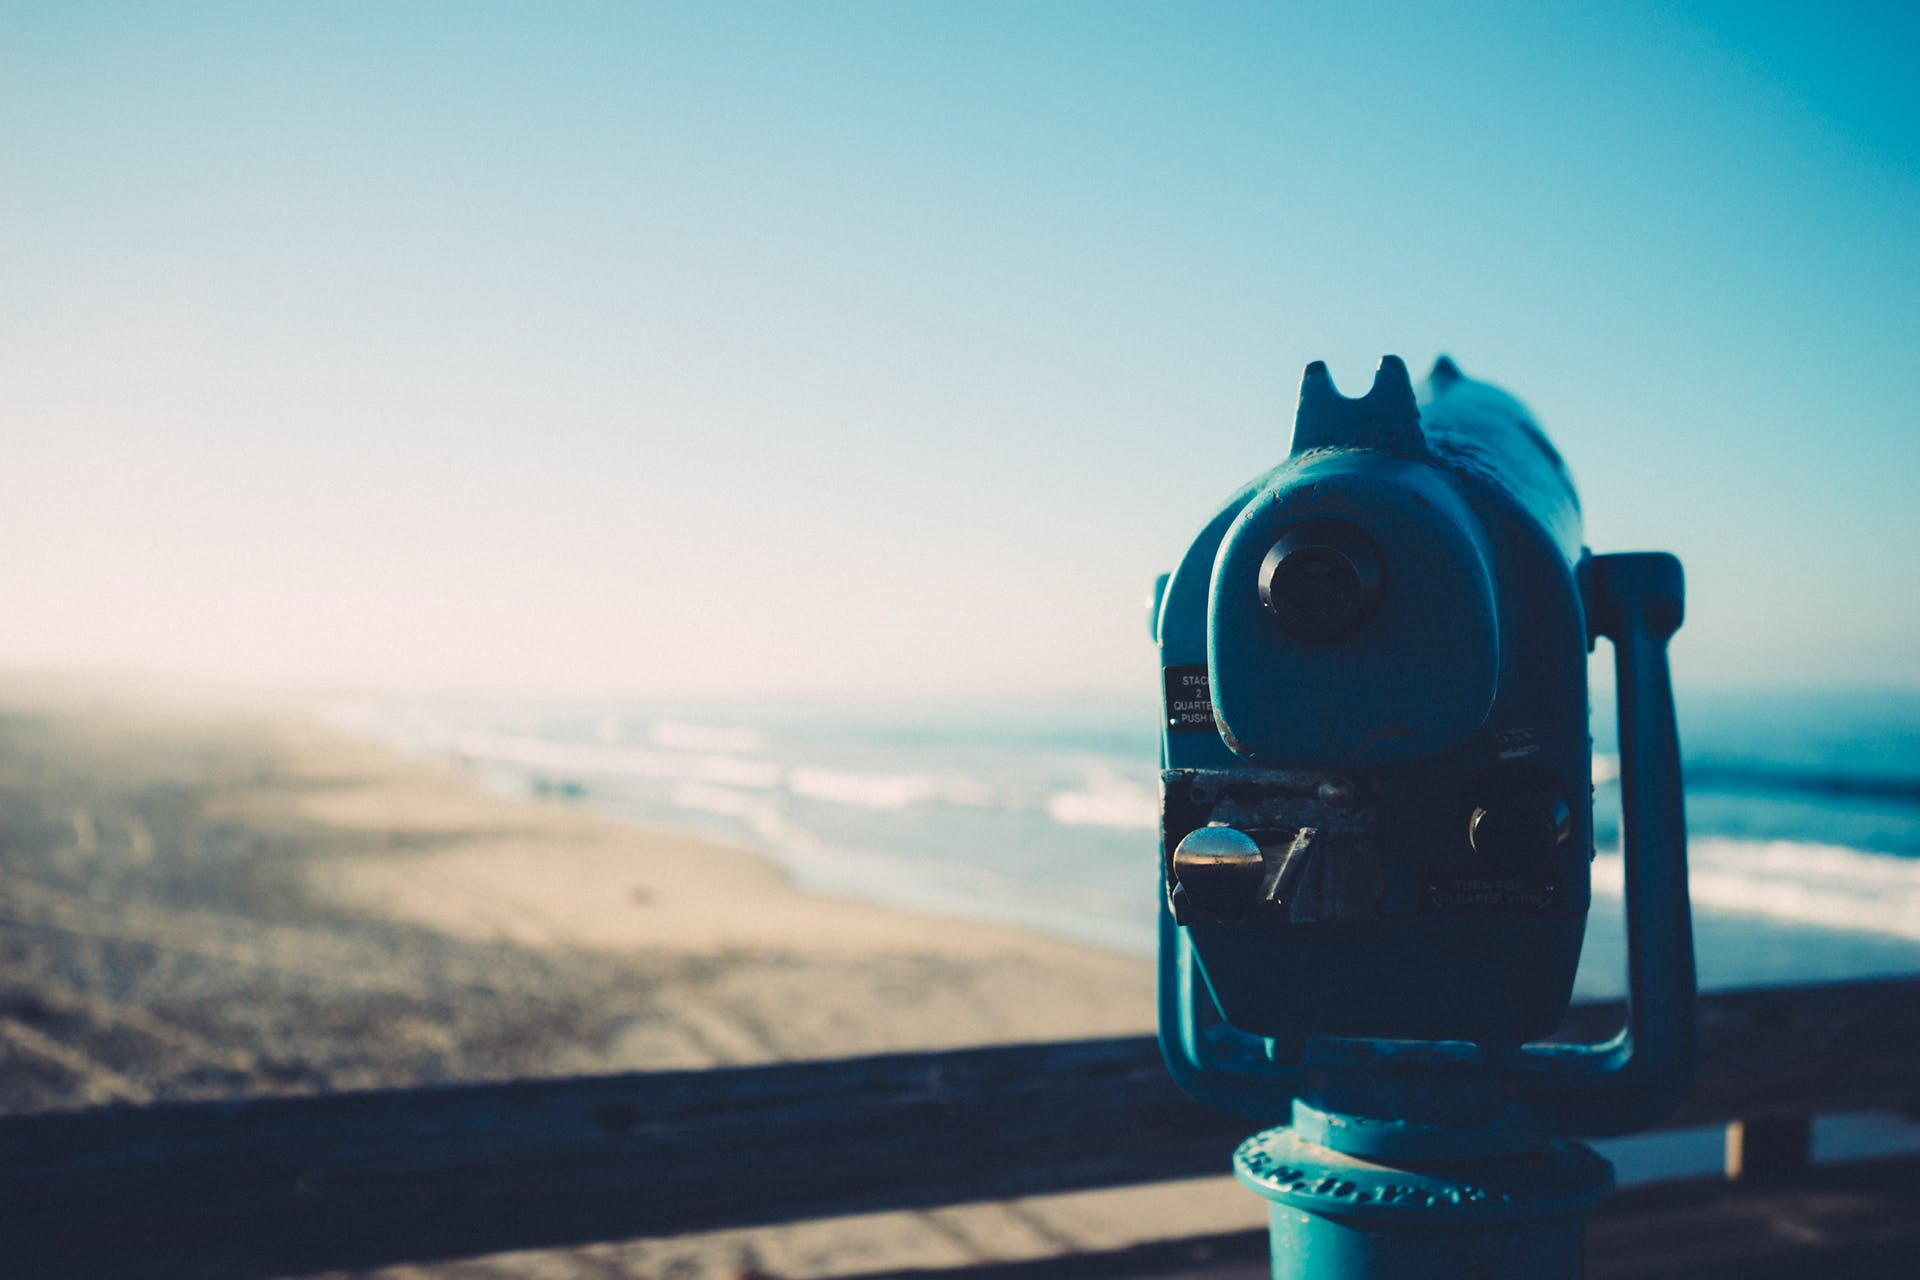 Free stock photo of telescope, view, binoculars, viewpoint